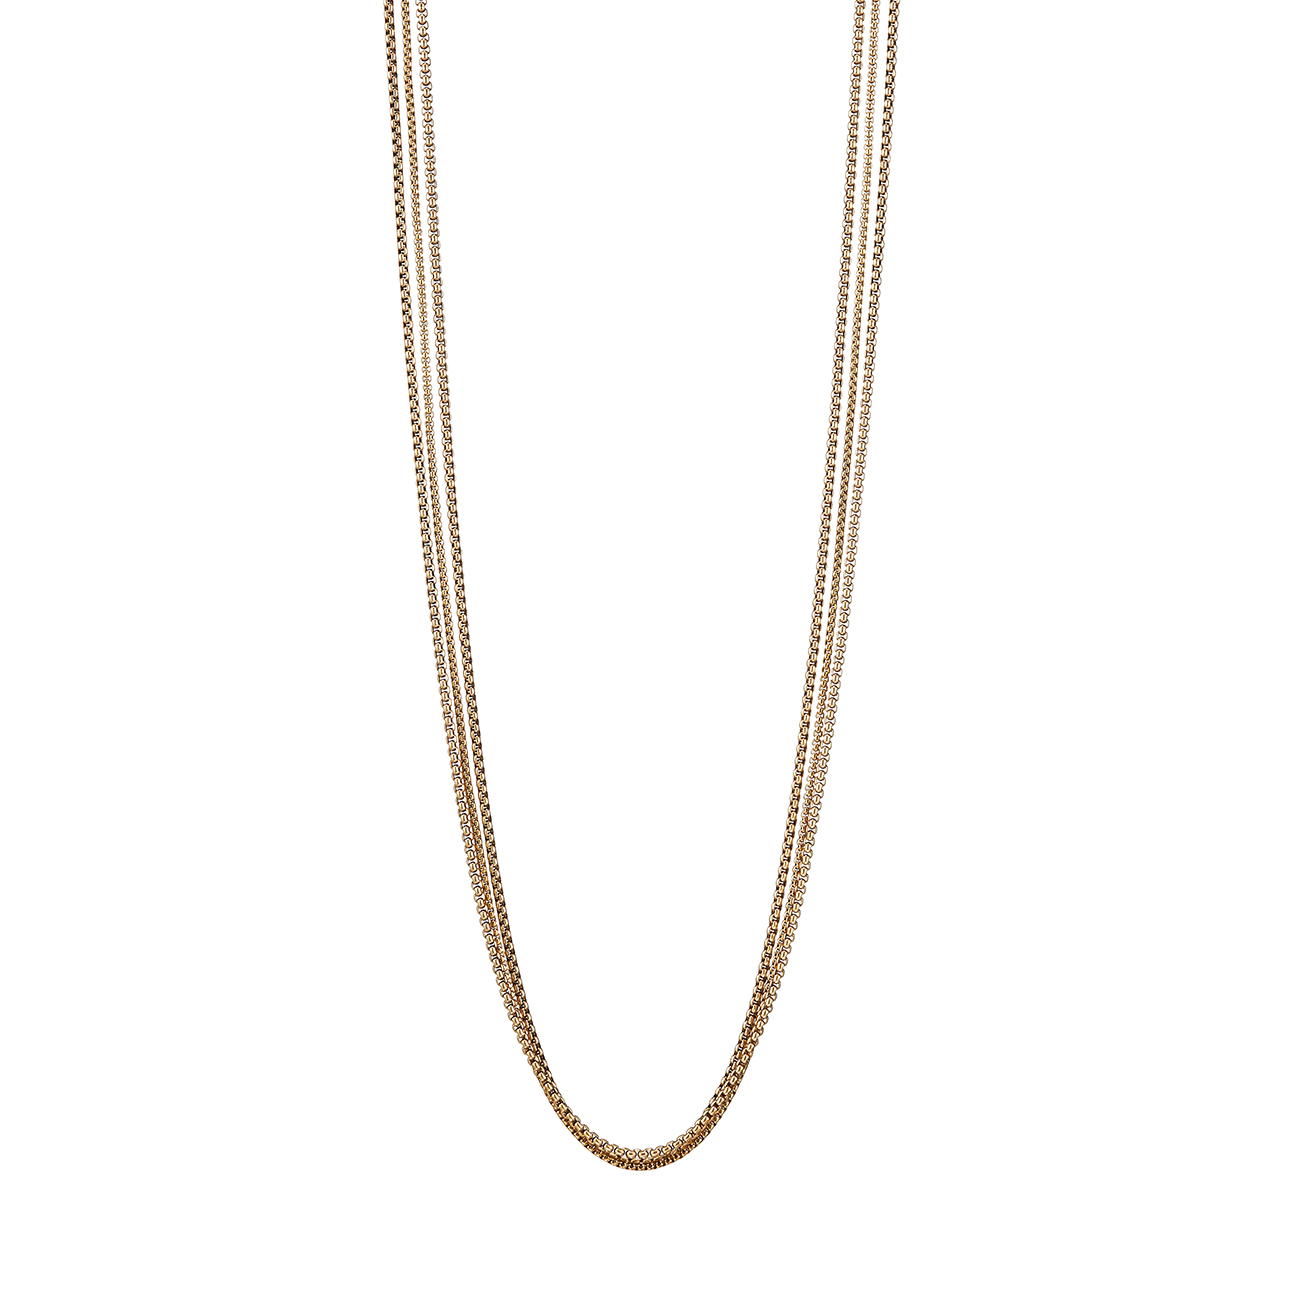 Long gold Billie Chains necklace by Jenny Bird